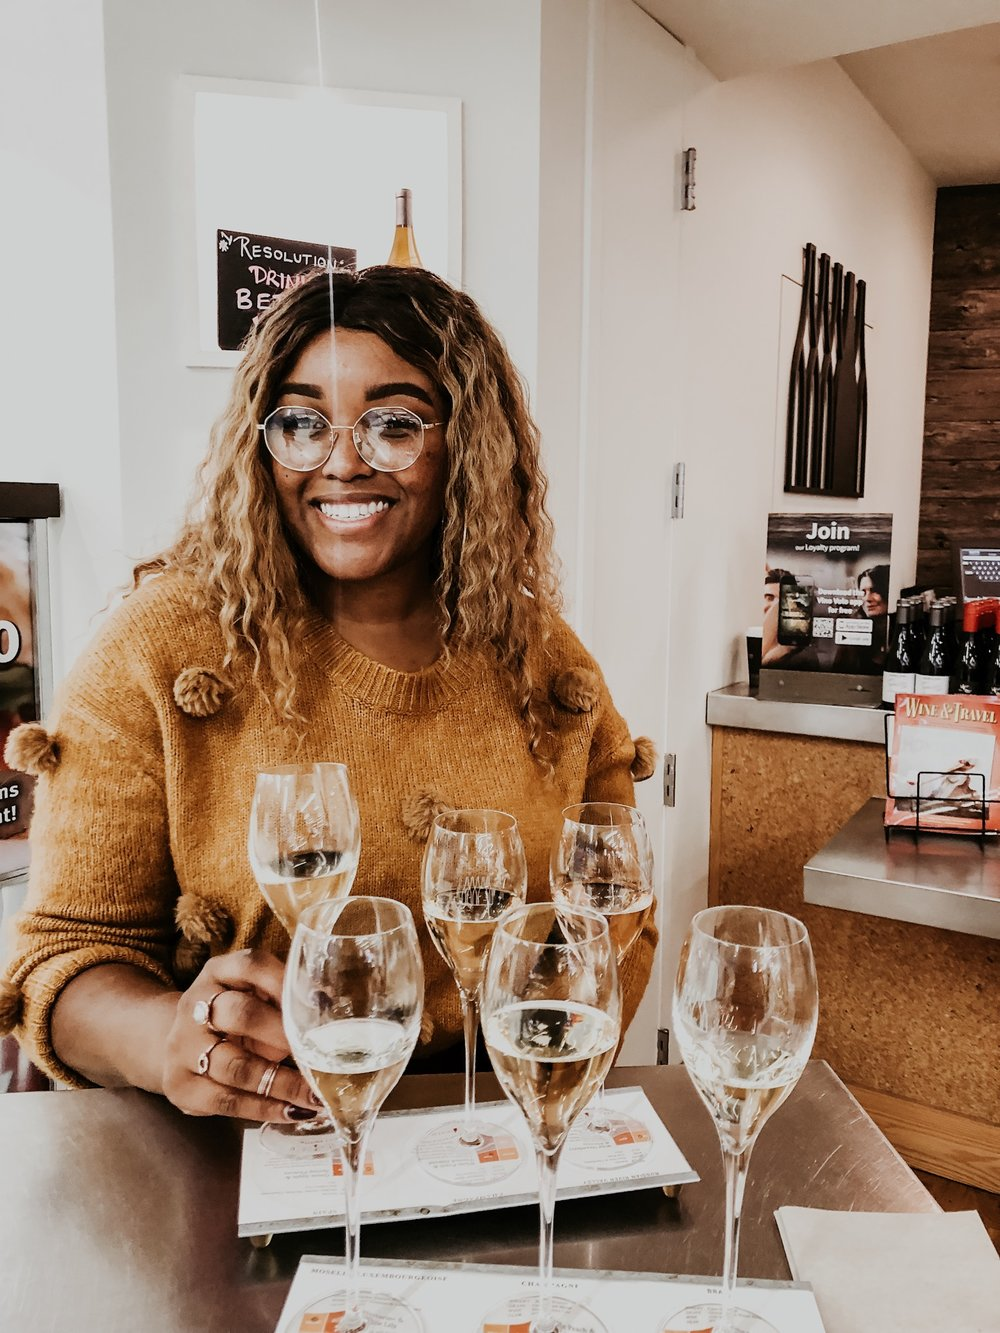 We made sure we got to the airport early enough to get those Pre-flight Flights! At SFO, before your flight you can do a little Champagne/ Sparkling tasting to help calm your pre-flight jitters.